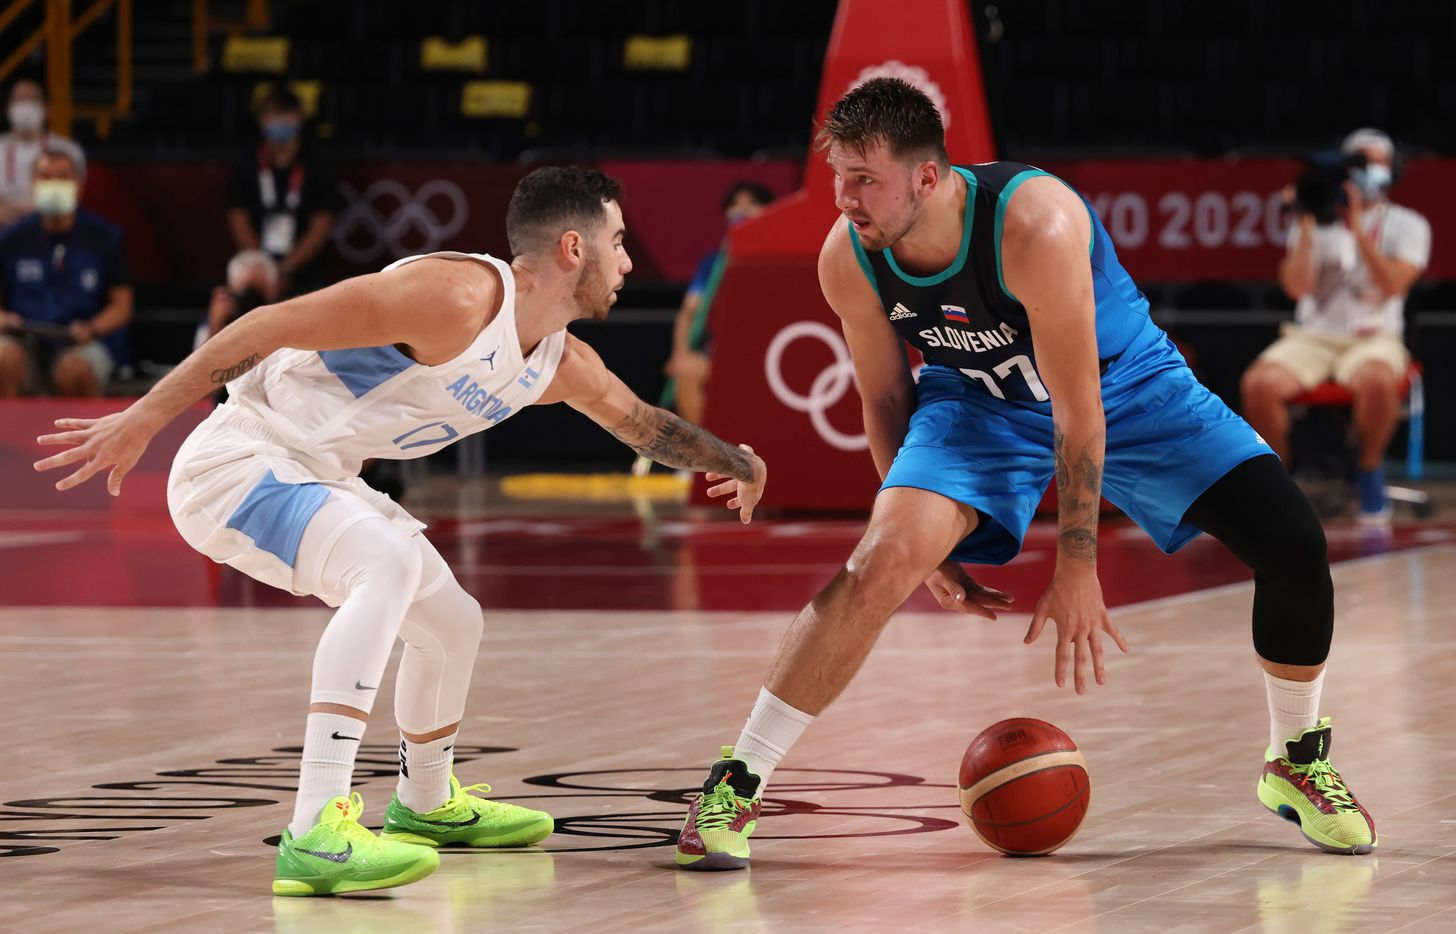 Slovenia's Luka Doncic (77) dribbles between his legs as he is defended by Argentina's Luca Vildoza (17) in the first half of play during the postponed 2020 Tokyo Olympics at Saitama Super Arena on Monday, July 26, 2021, in Saitama, Japan. Slovenia defeated Argentina 118-100. (Vernon Bryant/The Dallas Morning News)